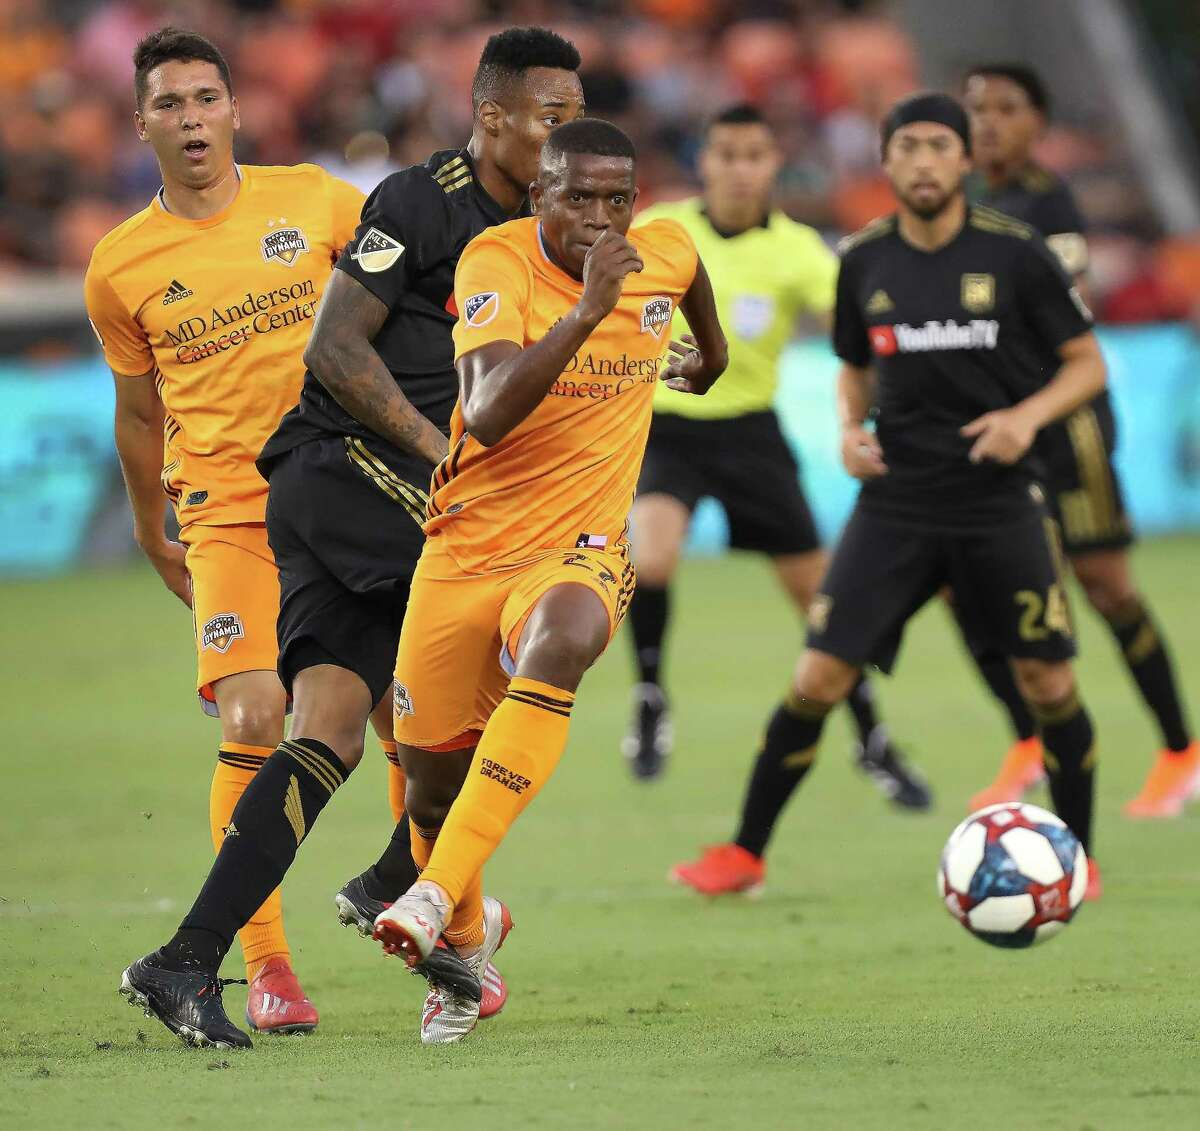 Midfielder Boniek Garcia is back with the Dynamo after missing time for the Gold Cup.